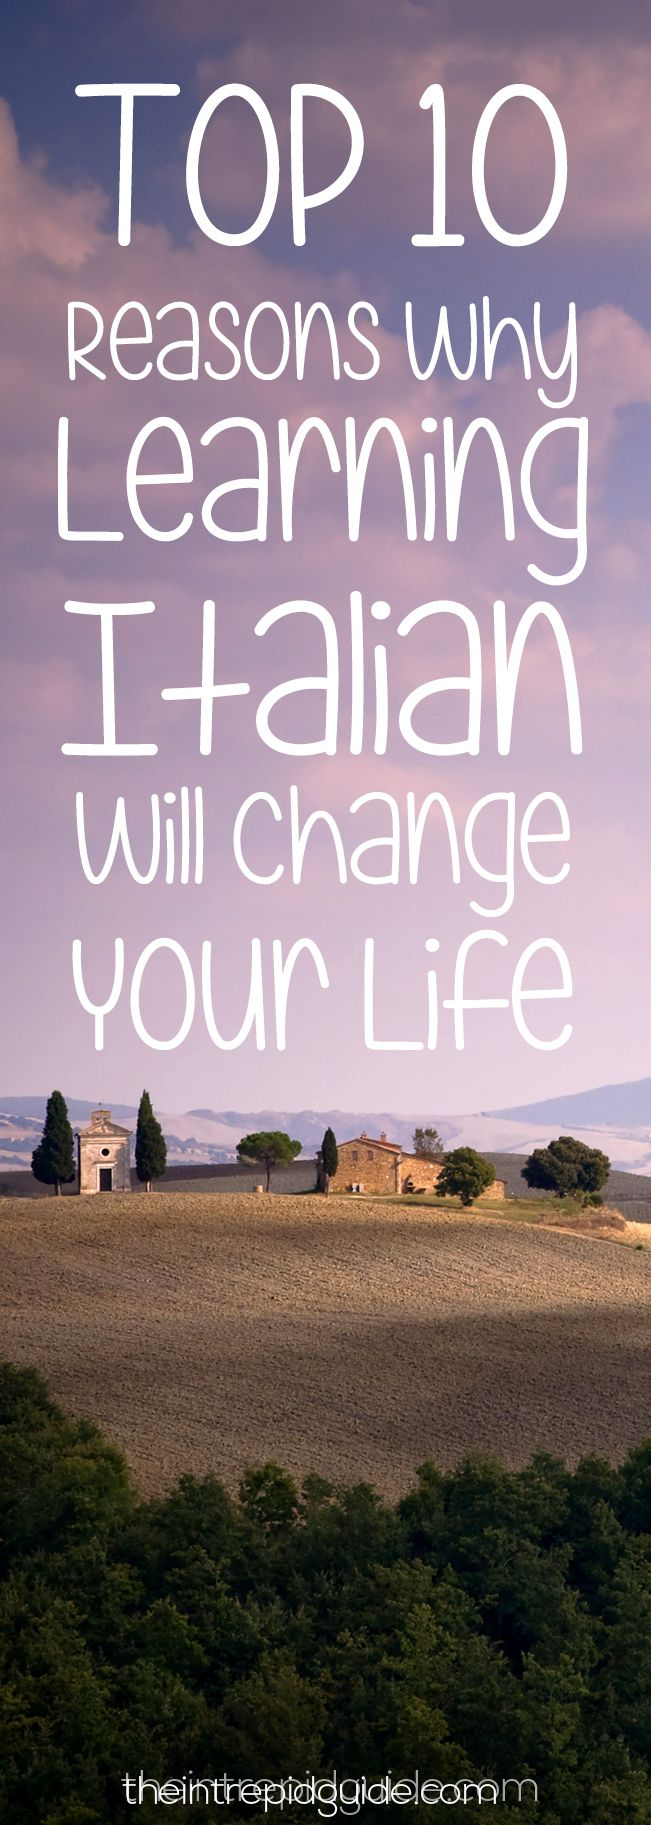 Attractive Funny Italian Quotes With English Translation Italian Proverbs About Life  U2013 Best Life 2017